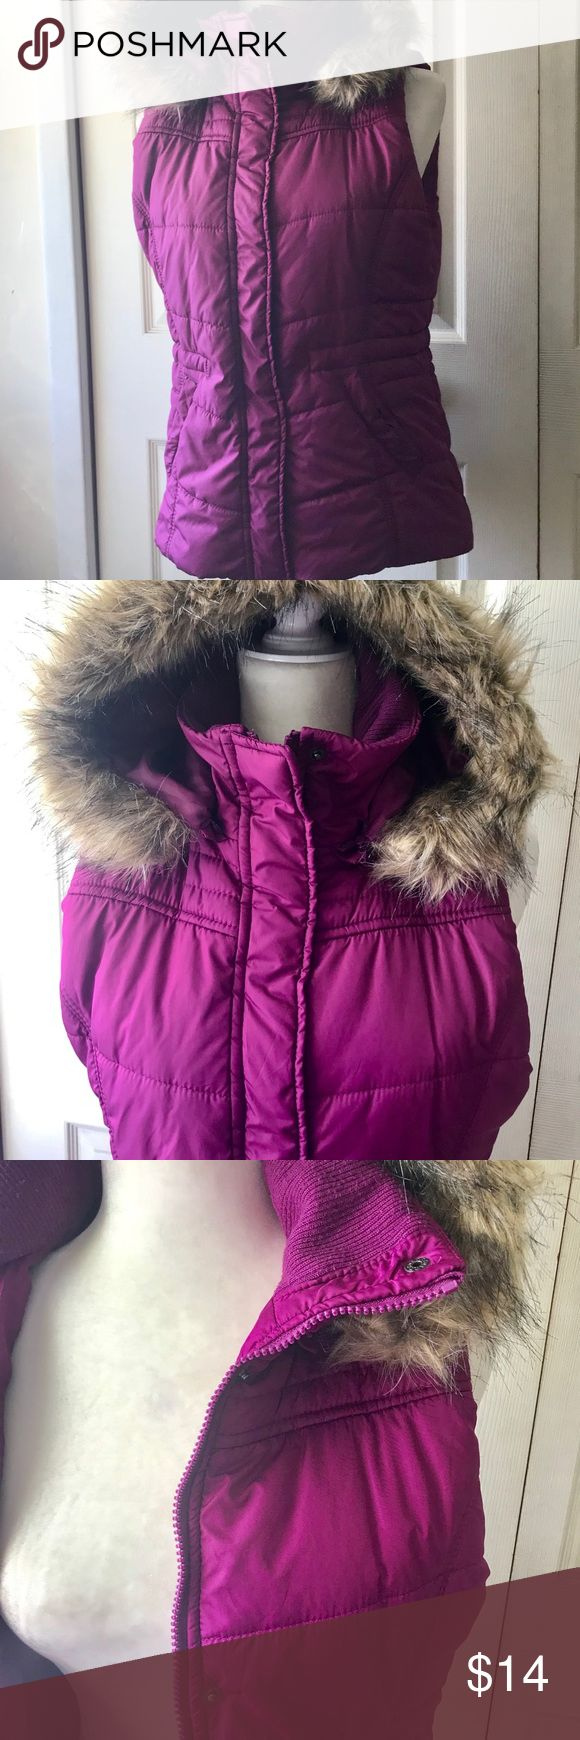 "Ladies Polyester vest with removable hood Pre owned excellent condition 100% polyester machine washable vest with faux fur removable zip off hood. 2 pockets in front 1 slip pocket with snap closure, adjustable elastic pulls at waist.  Length from back neck is 25"" underarm to underarm 21"" laying flat. Front zipper and snap closures. Color is deep pink/magenta New York & Company Jackets & Coats Vests"